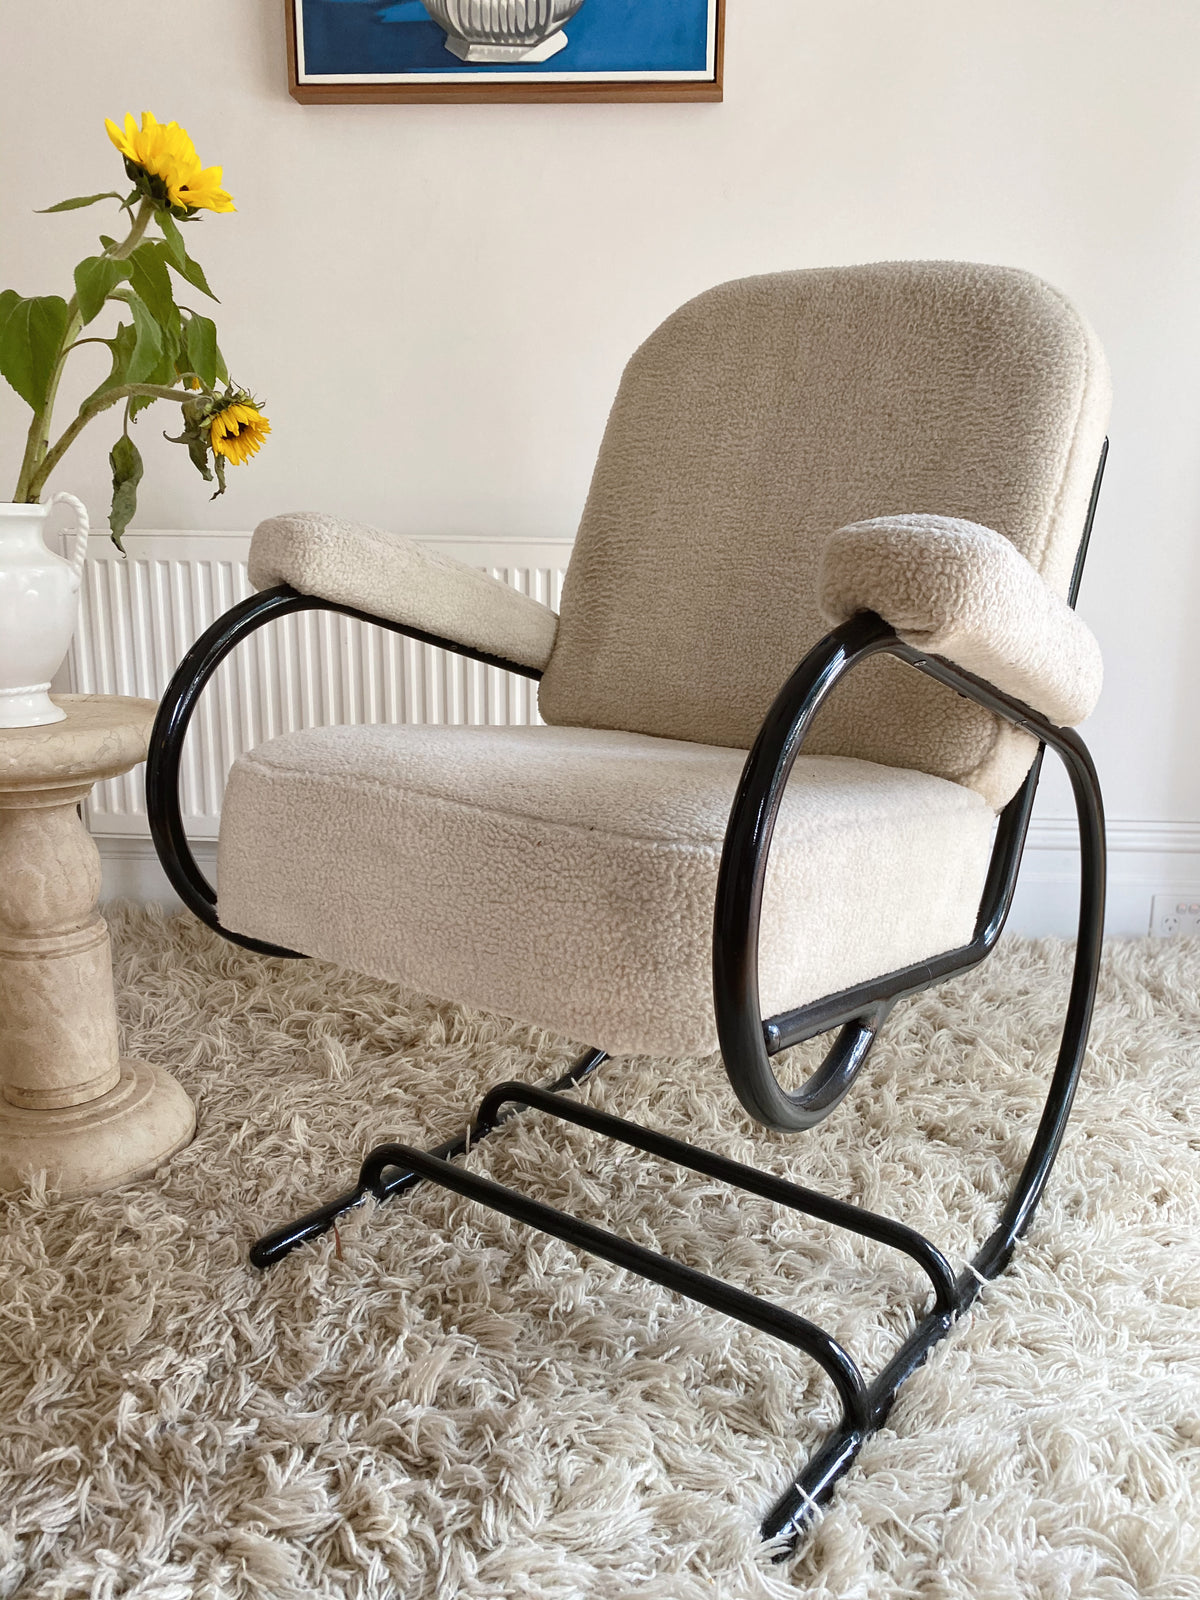 French Art Deco Bauhaus Tubular Lounge Chair circa 1930s